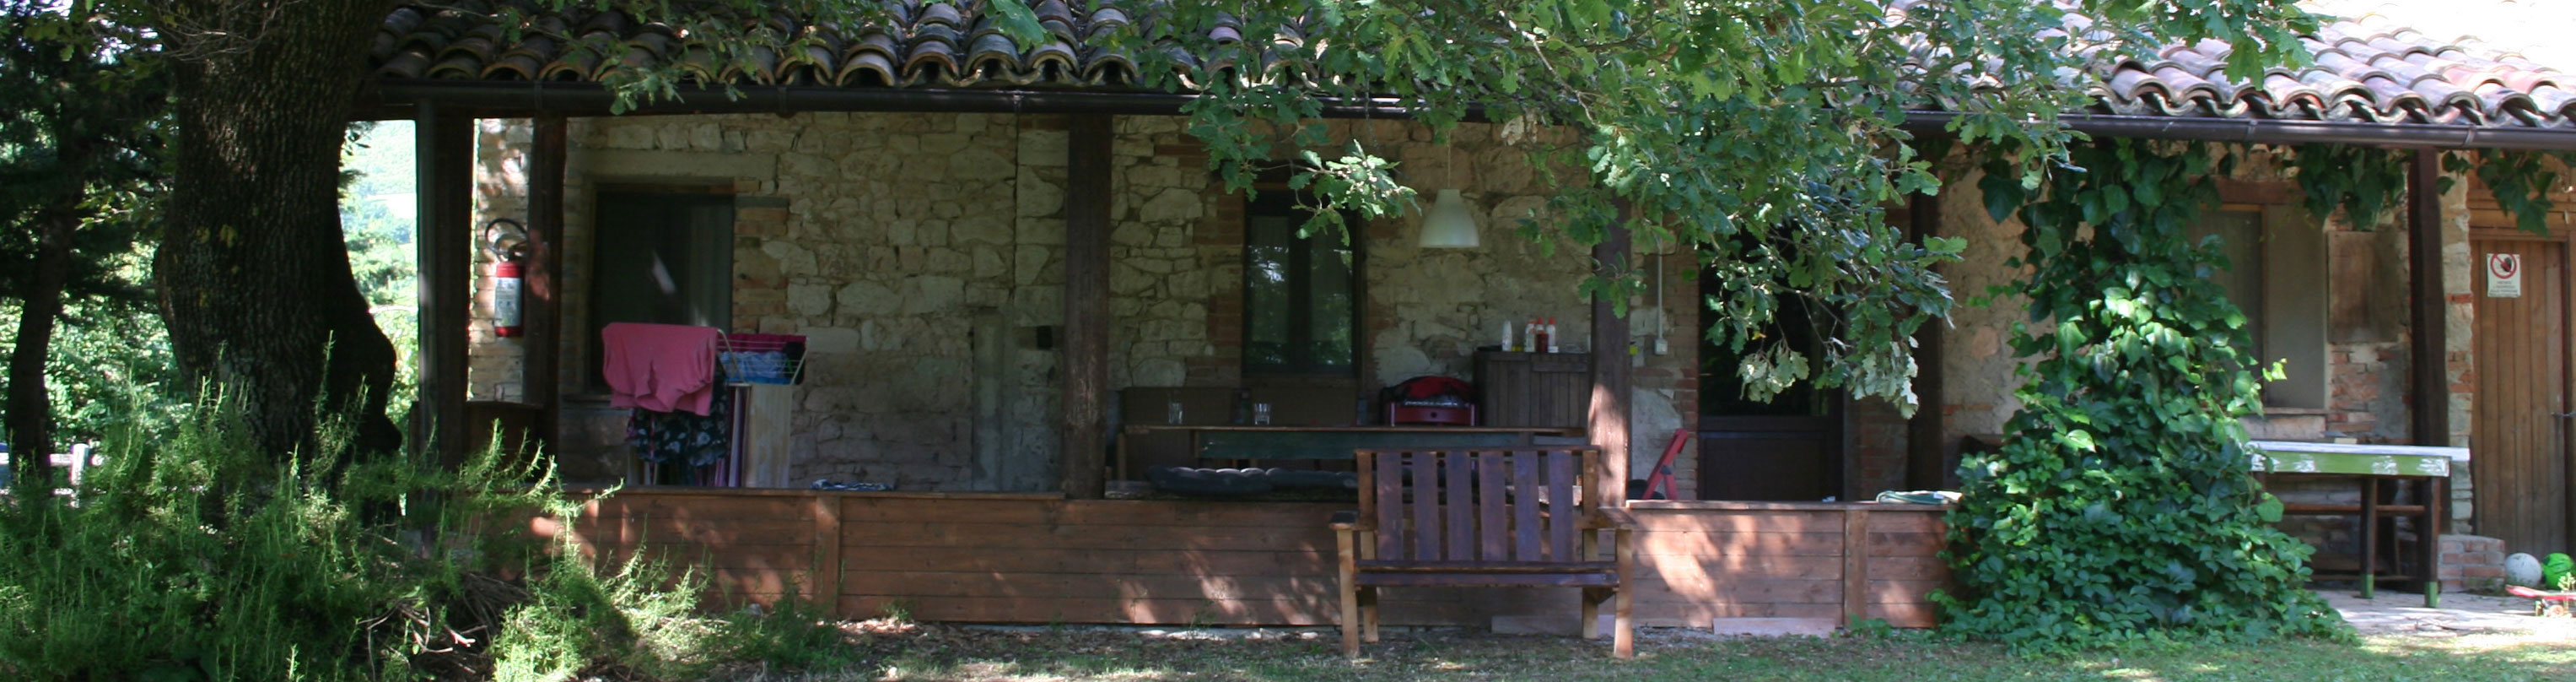 Rental Property for 4 persons with swimming pool in Marche Italy